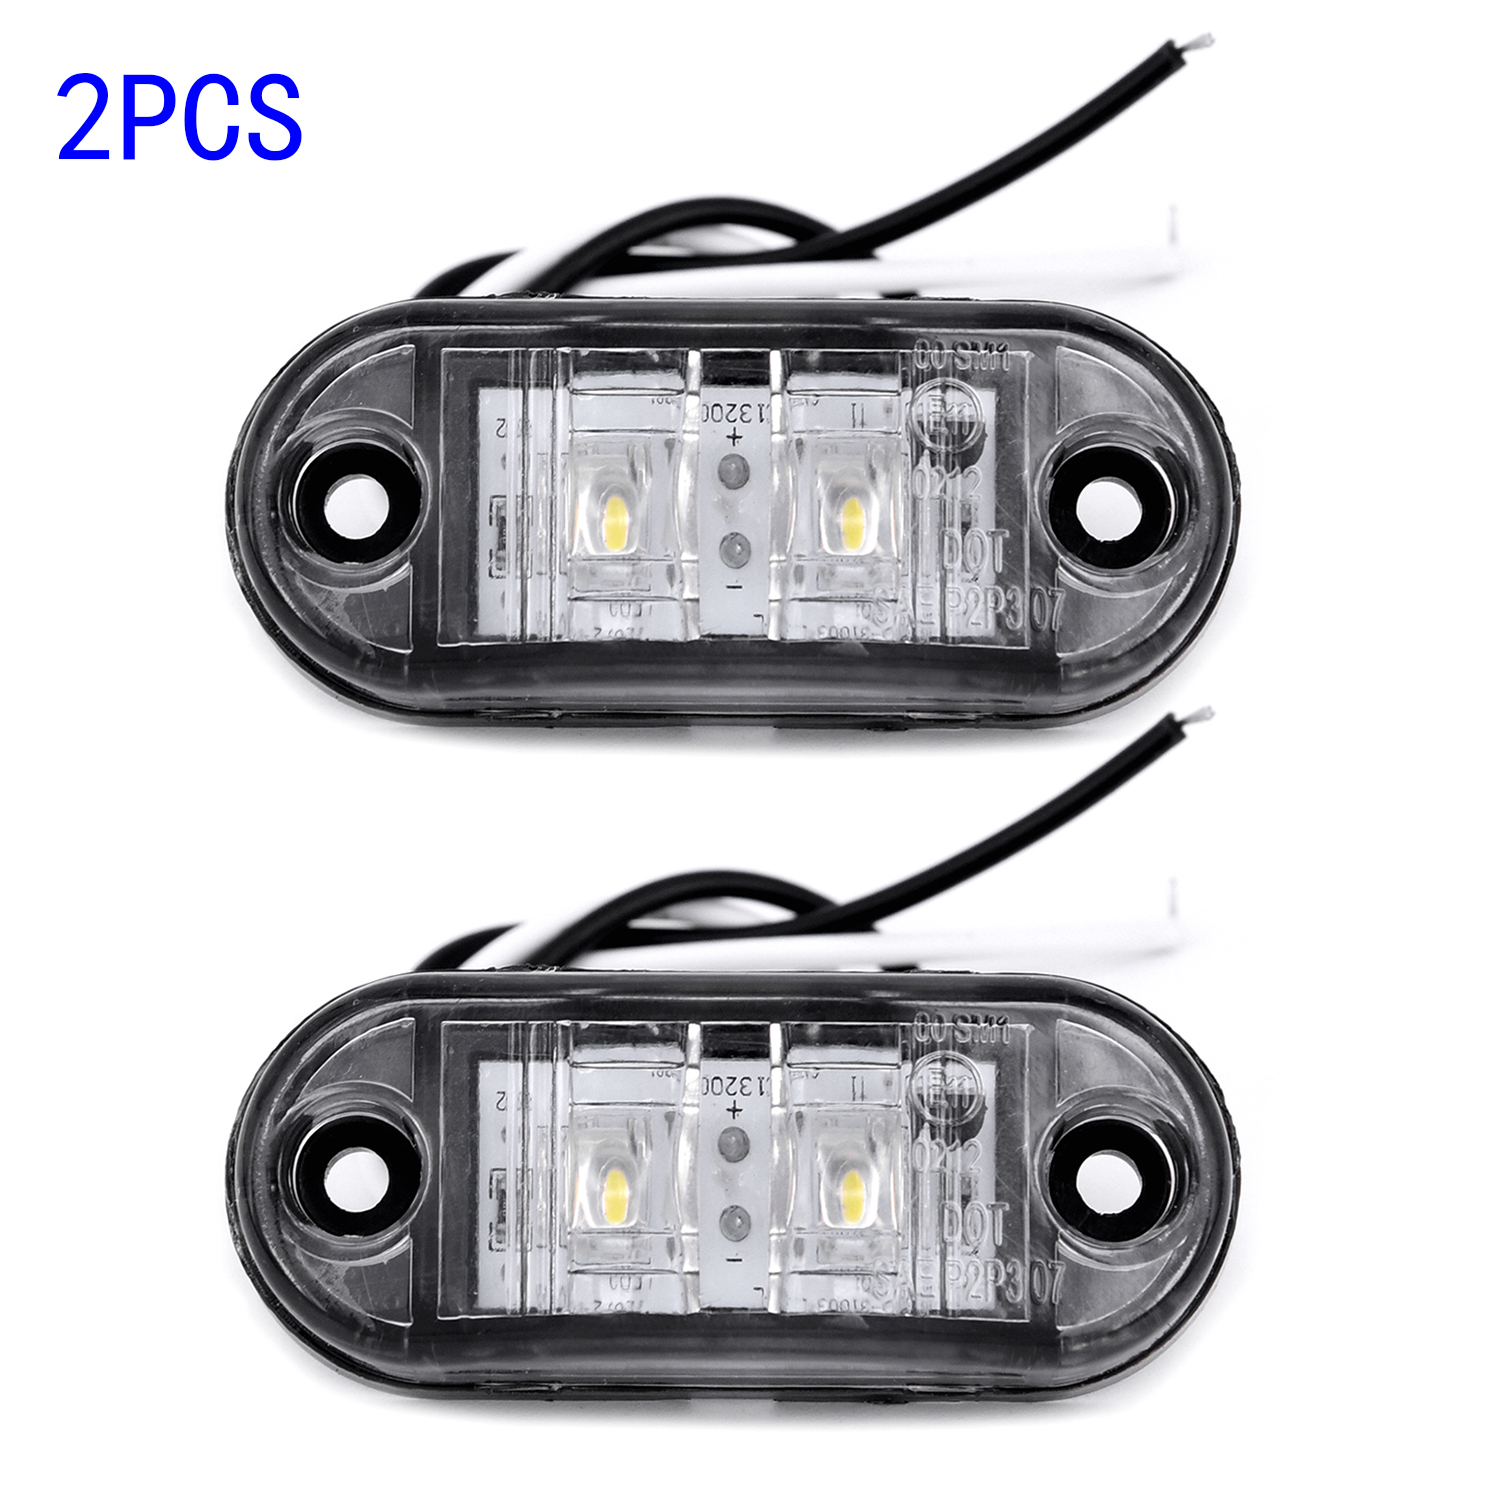 2pcs White 12V LED Car Side Marker Tail Light 24V Trailer Truck Lorry Lamp Side Marker Lights Car External Lights Warning Light